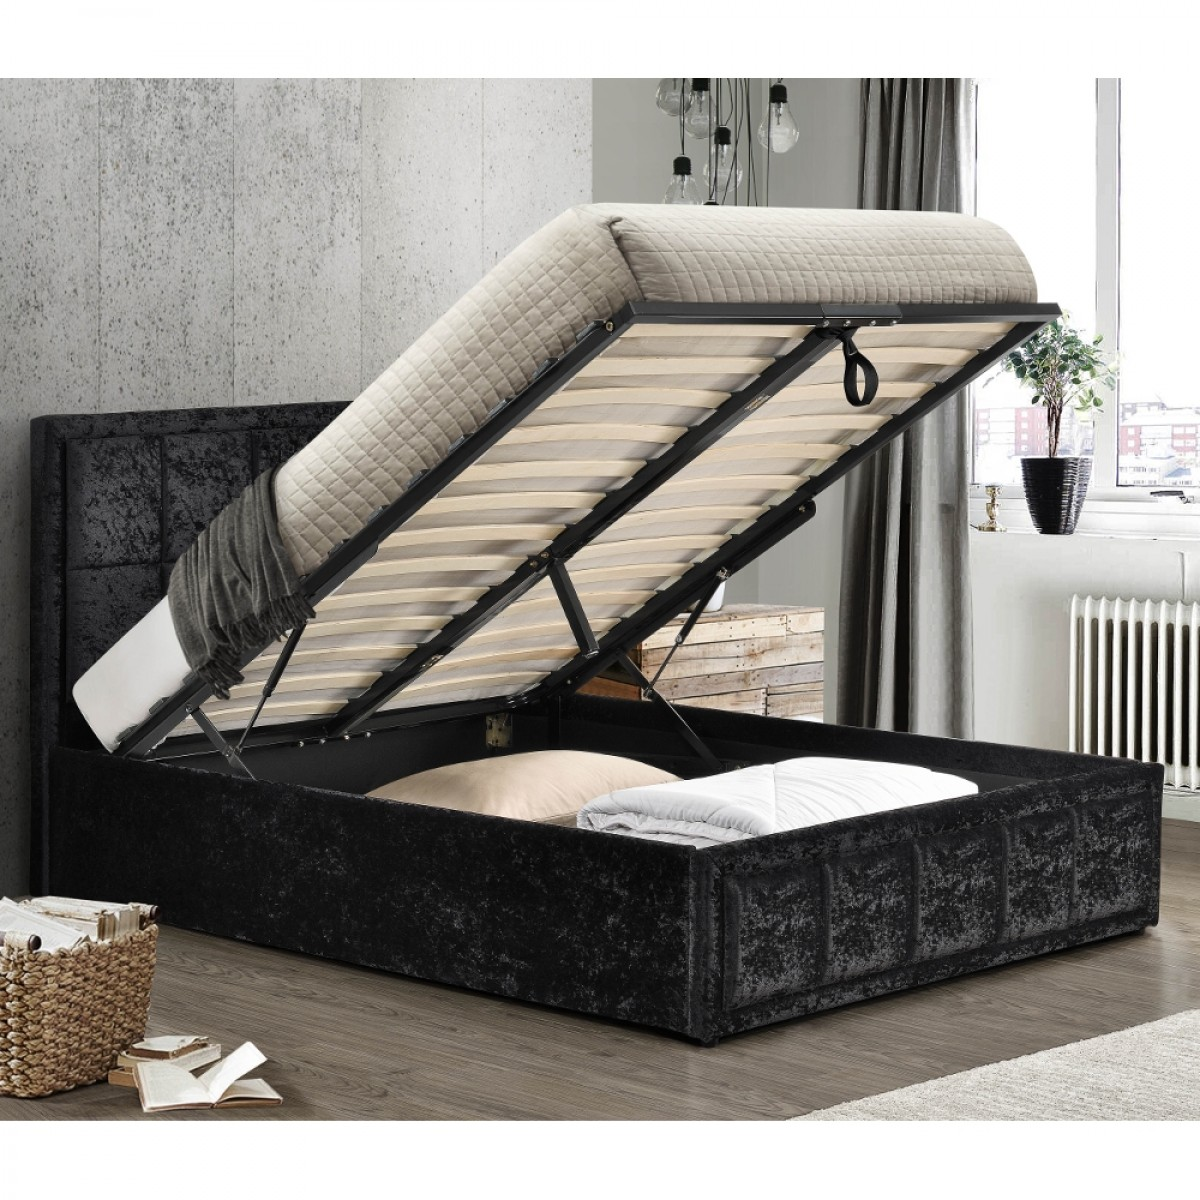 Fabulous Hannover Black Velvet Fabric Ottoman Storage Bed Ncnpc Chair Design For Home Ncnpcorg